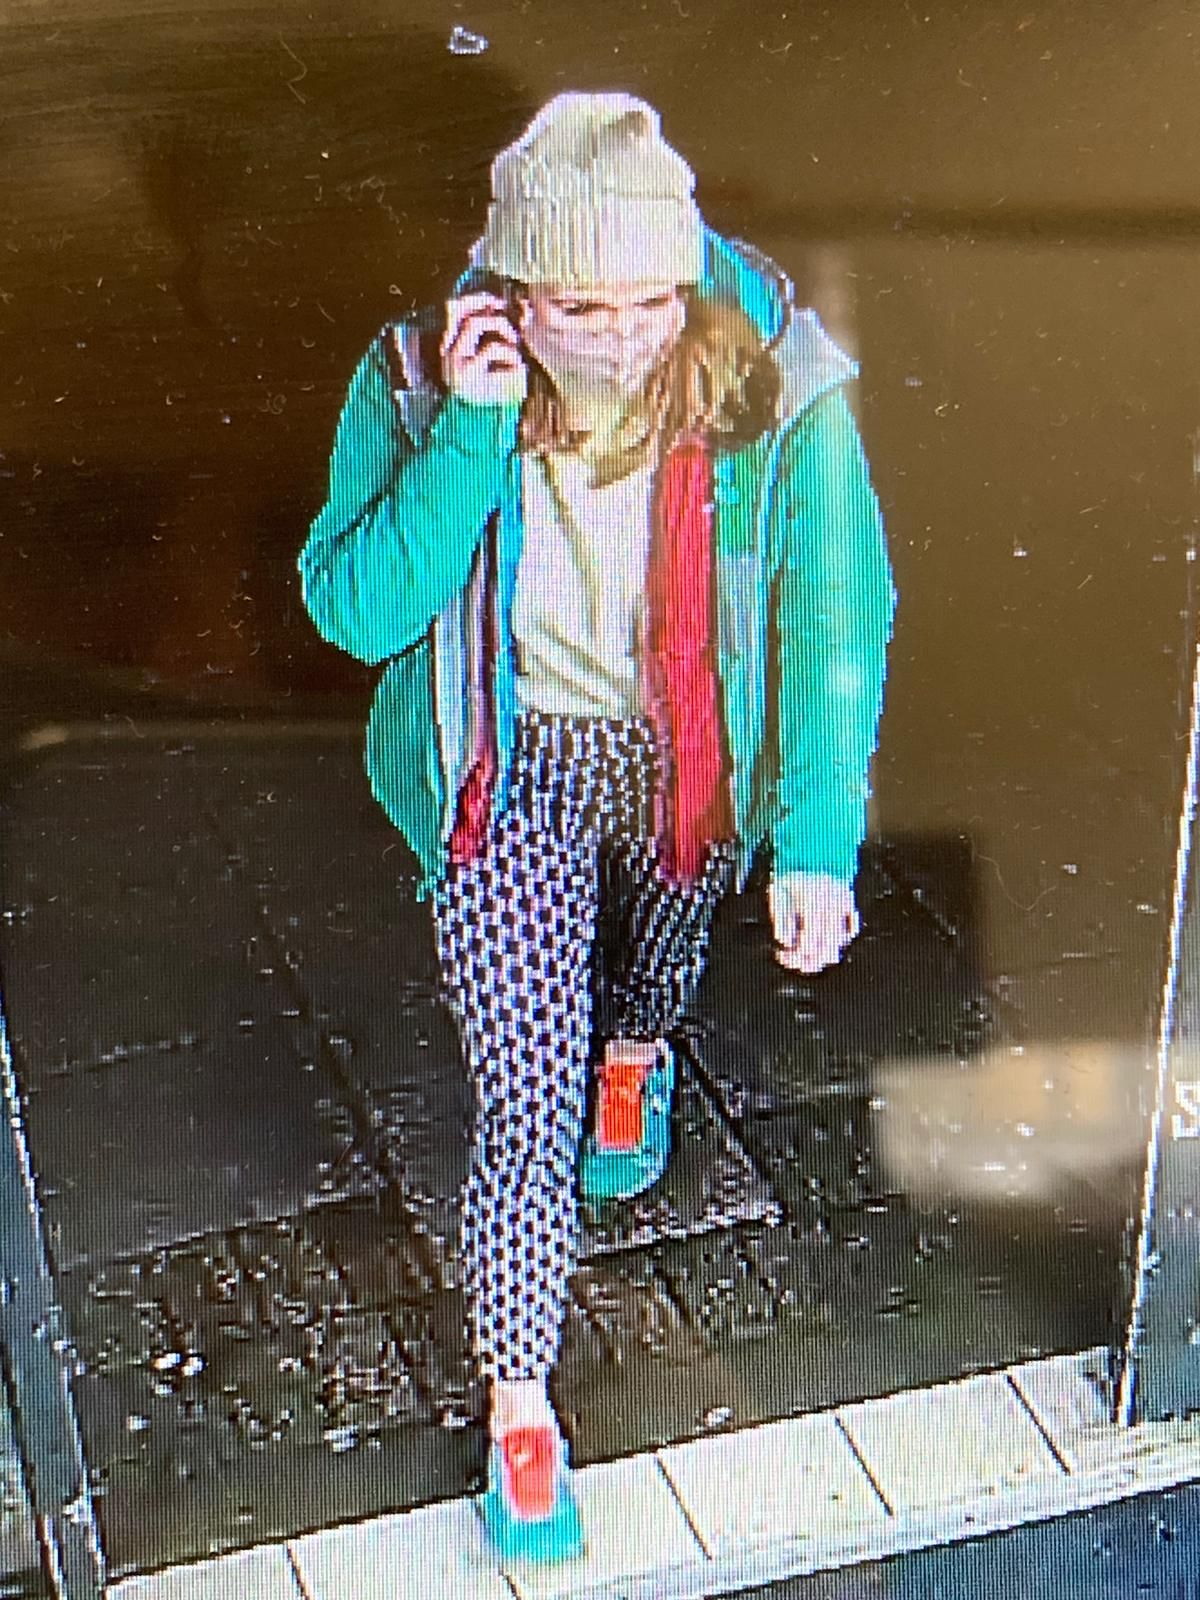 A CCTV image of Sarah Everard on the night she went